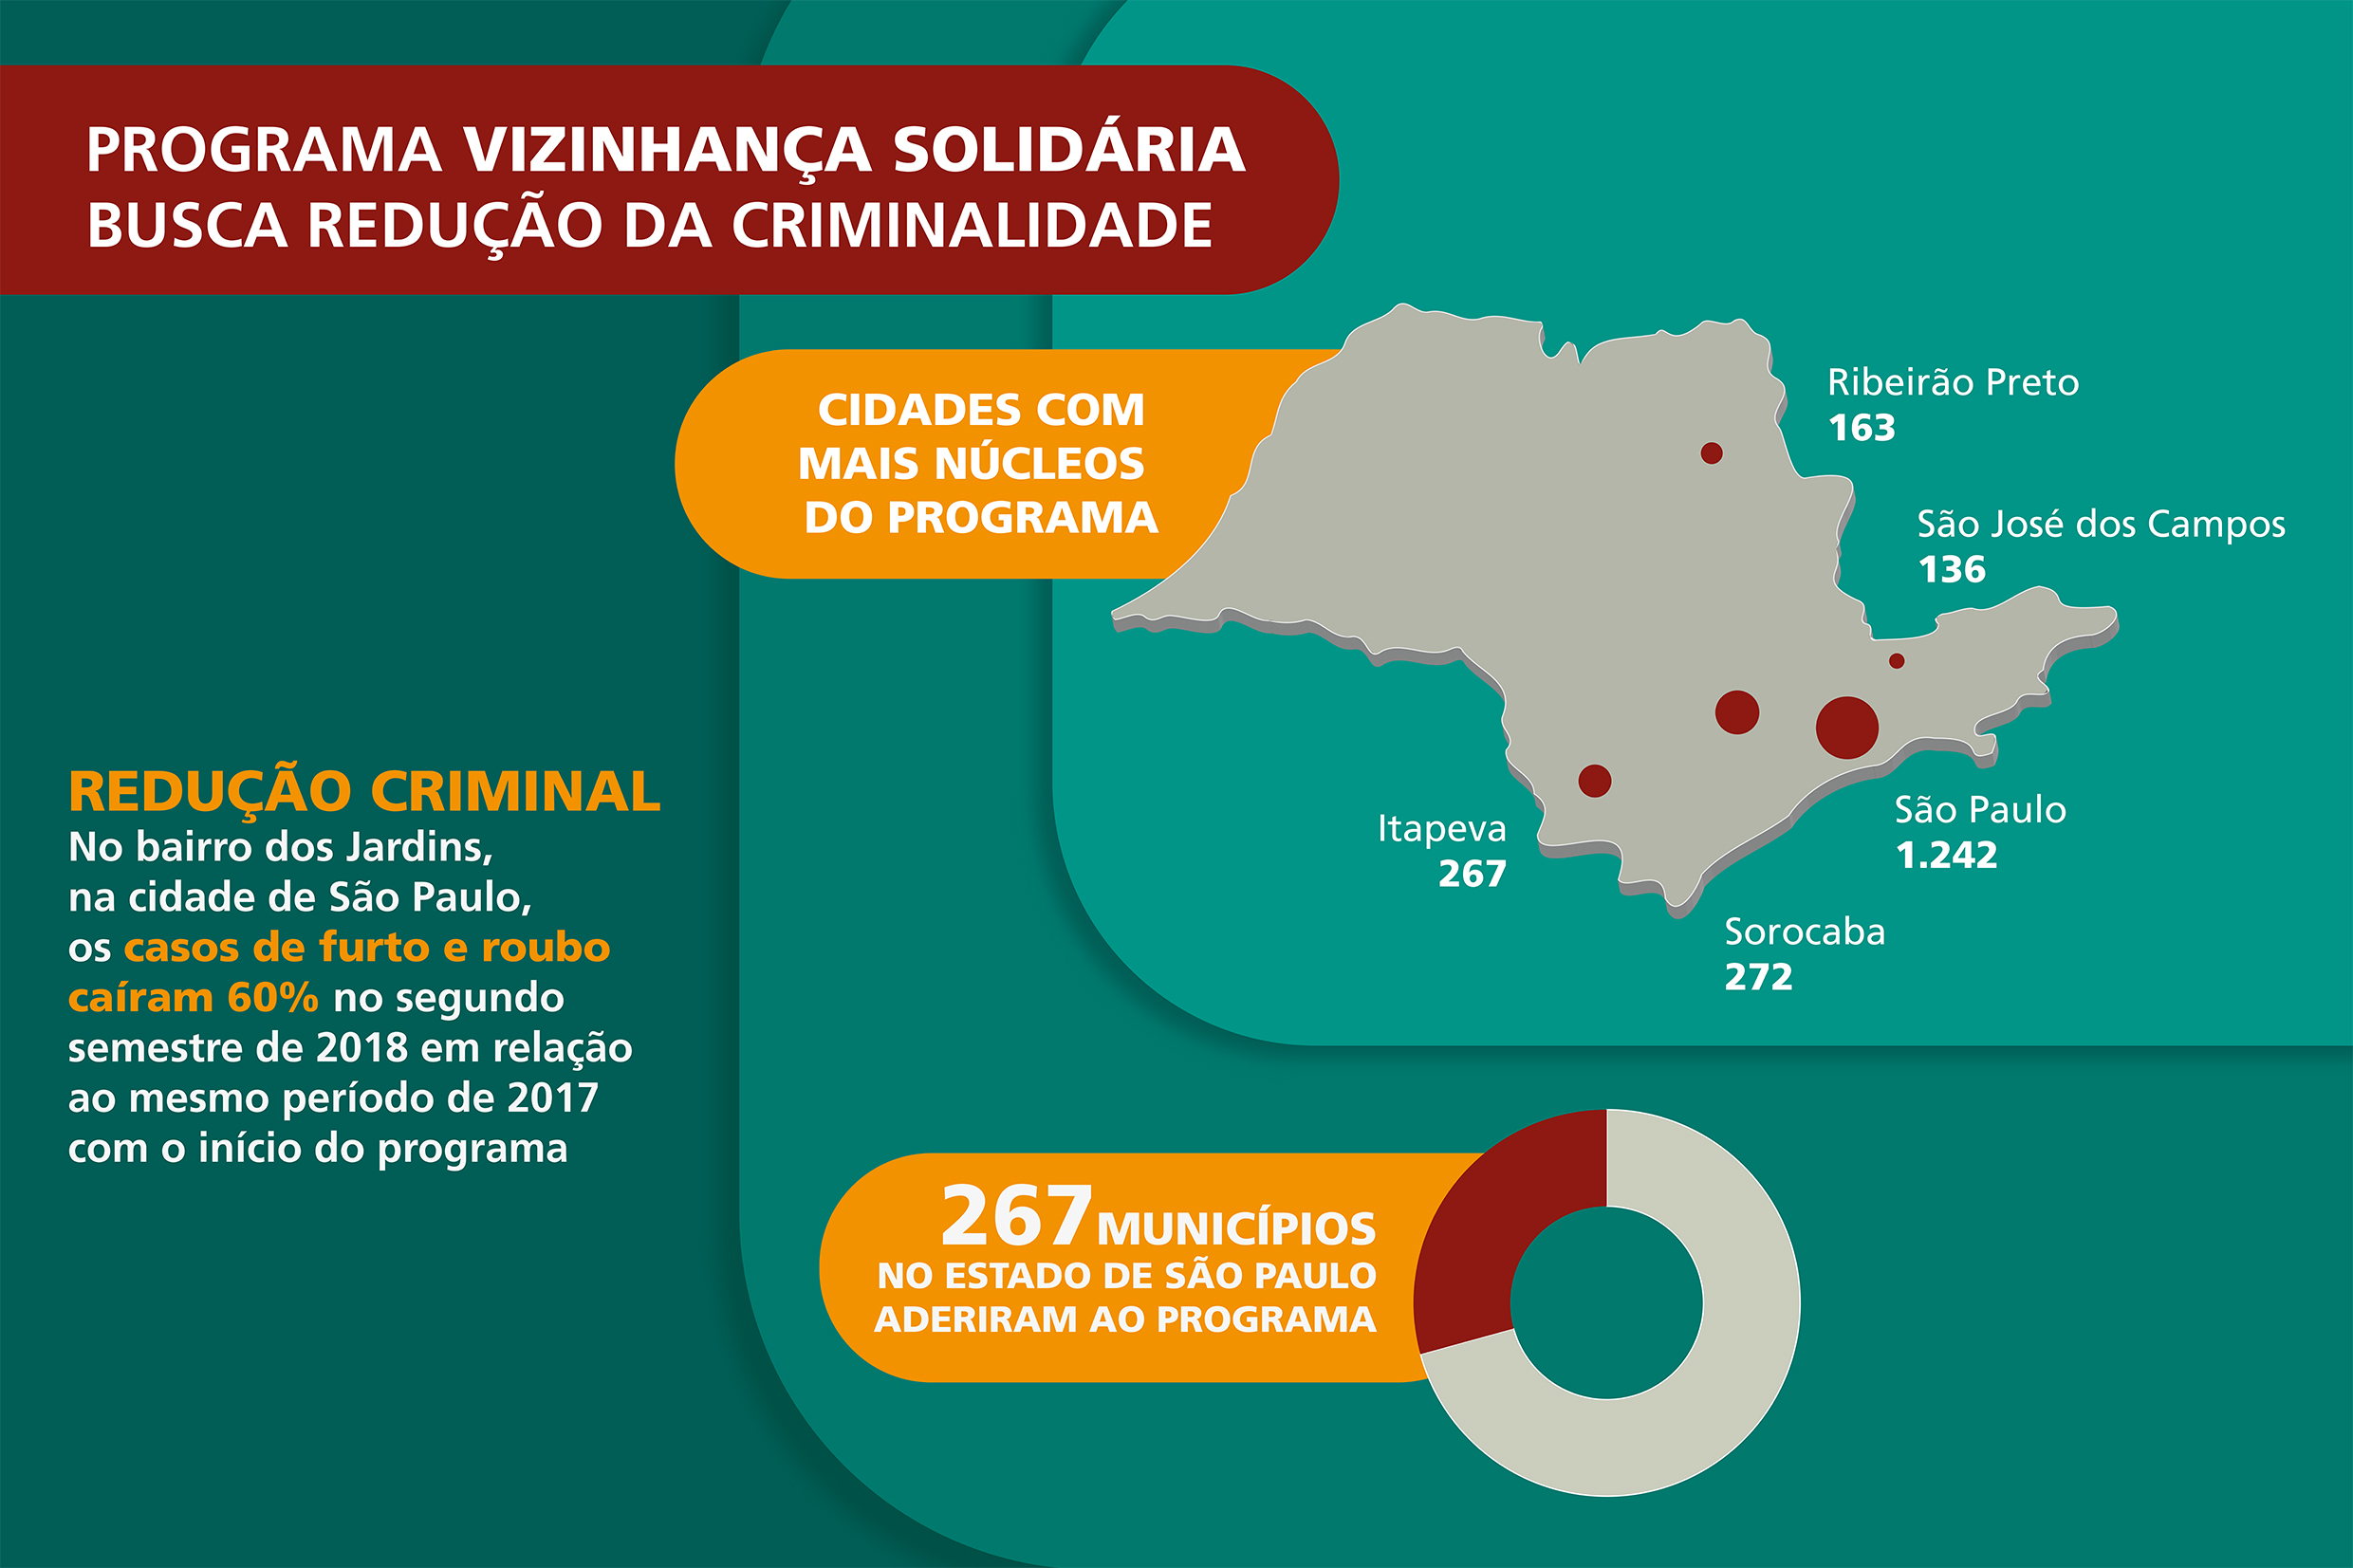 Infográfico<a style='float:right' href='https://www3.al.sp.gov.br/repositorio/noticia/N-07-2021/fg270979.jpg' target=_blank><img src='/_img/material-file-download-white.png' width='14px' alt='Clique para baixar a imagem'></a>